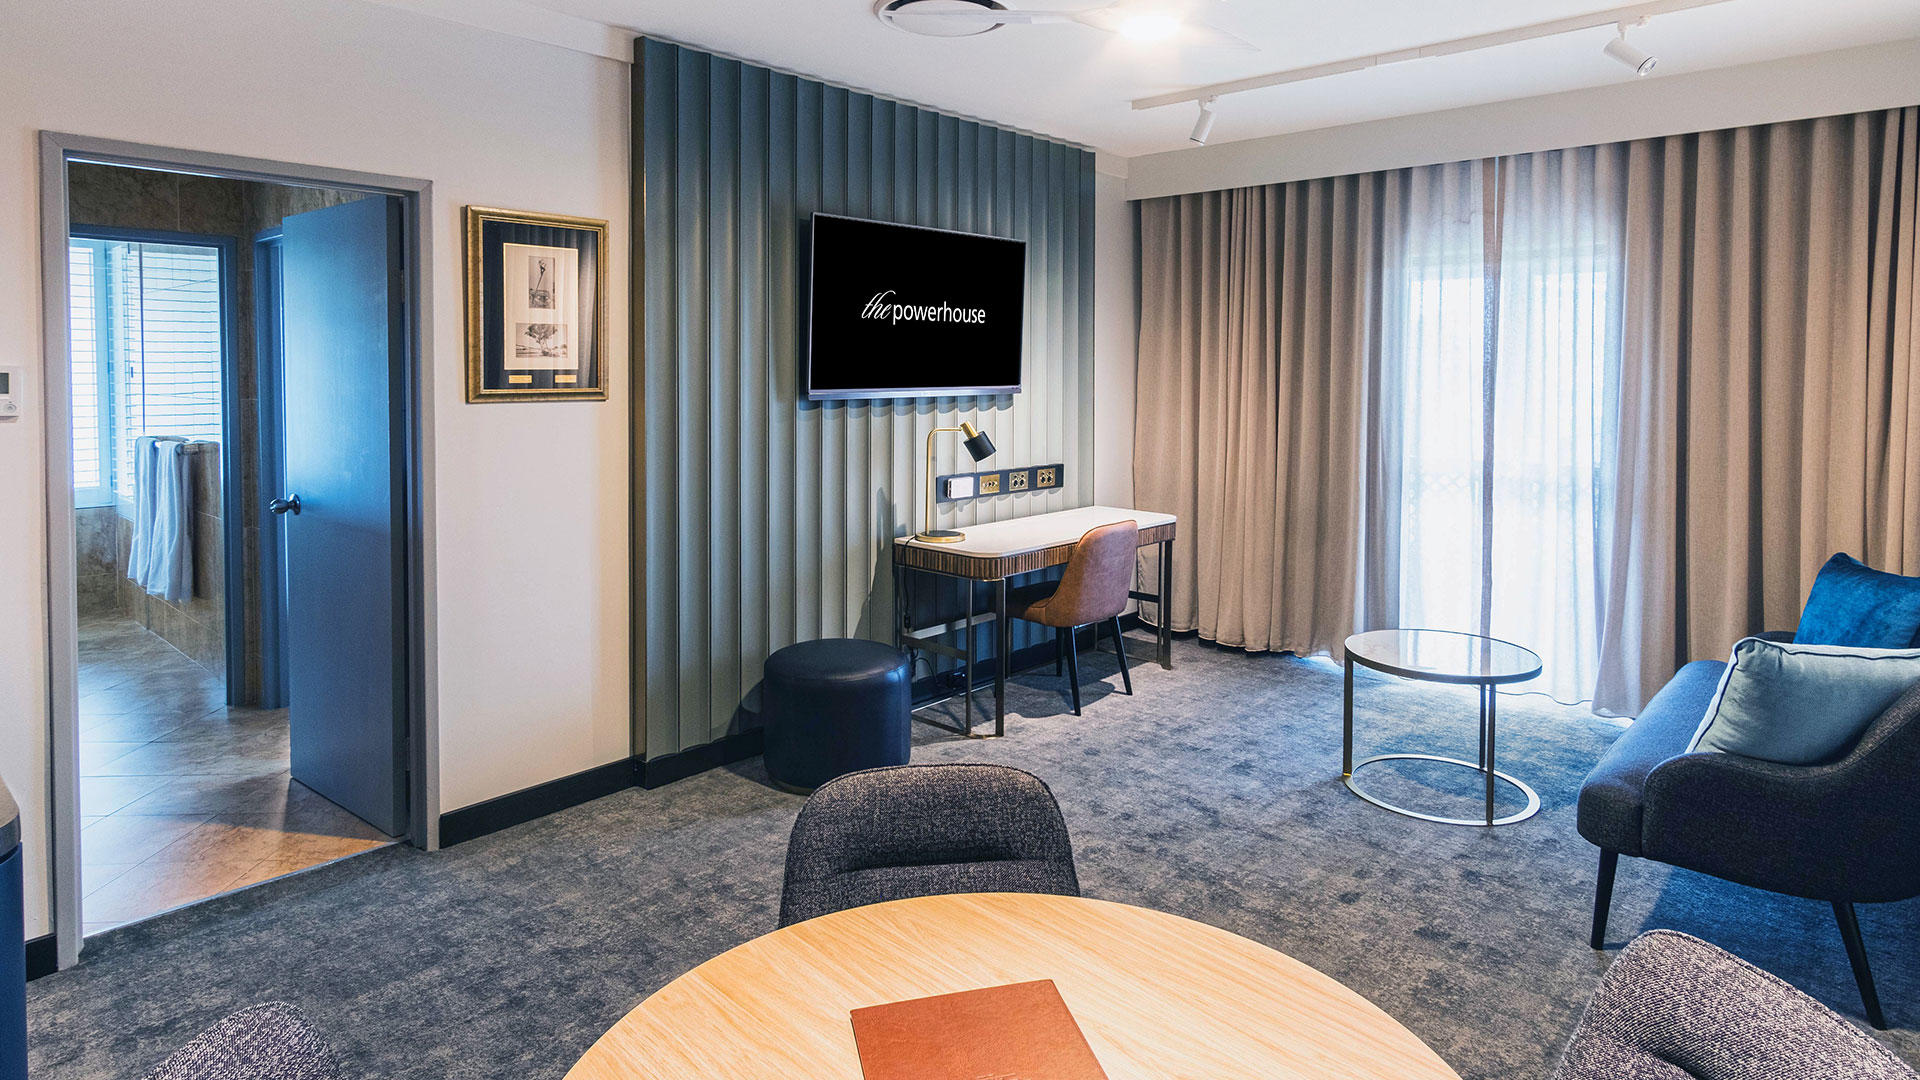 Powerhouse_Hotel_Tamworth_by_Rydges_Room_interior_2